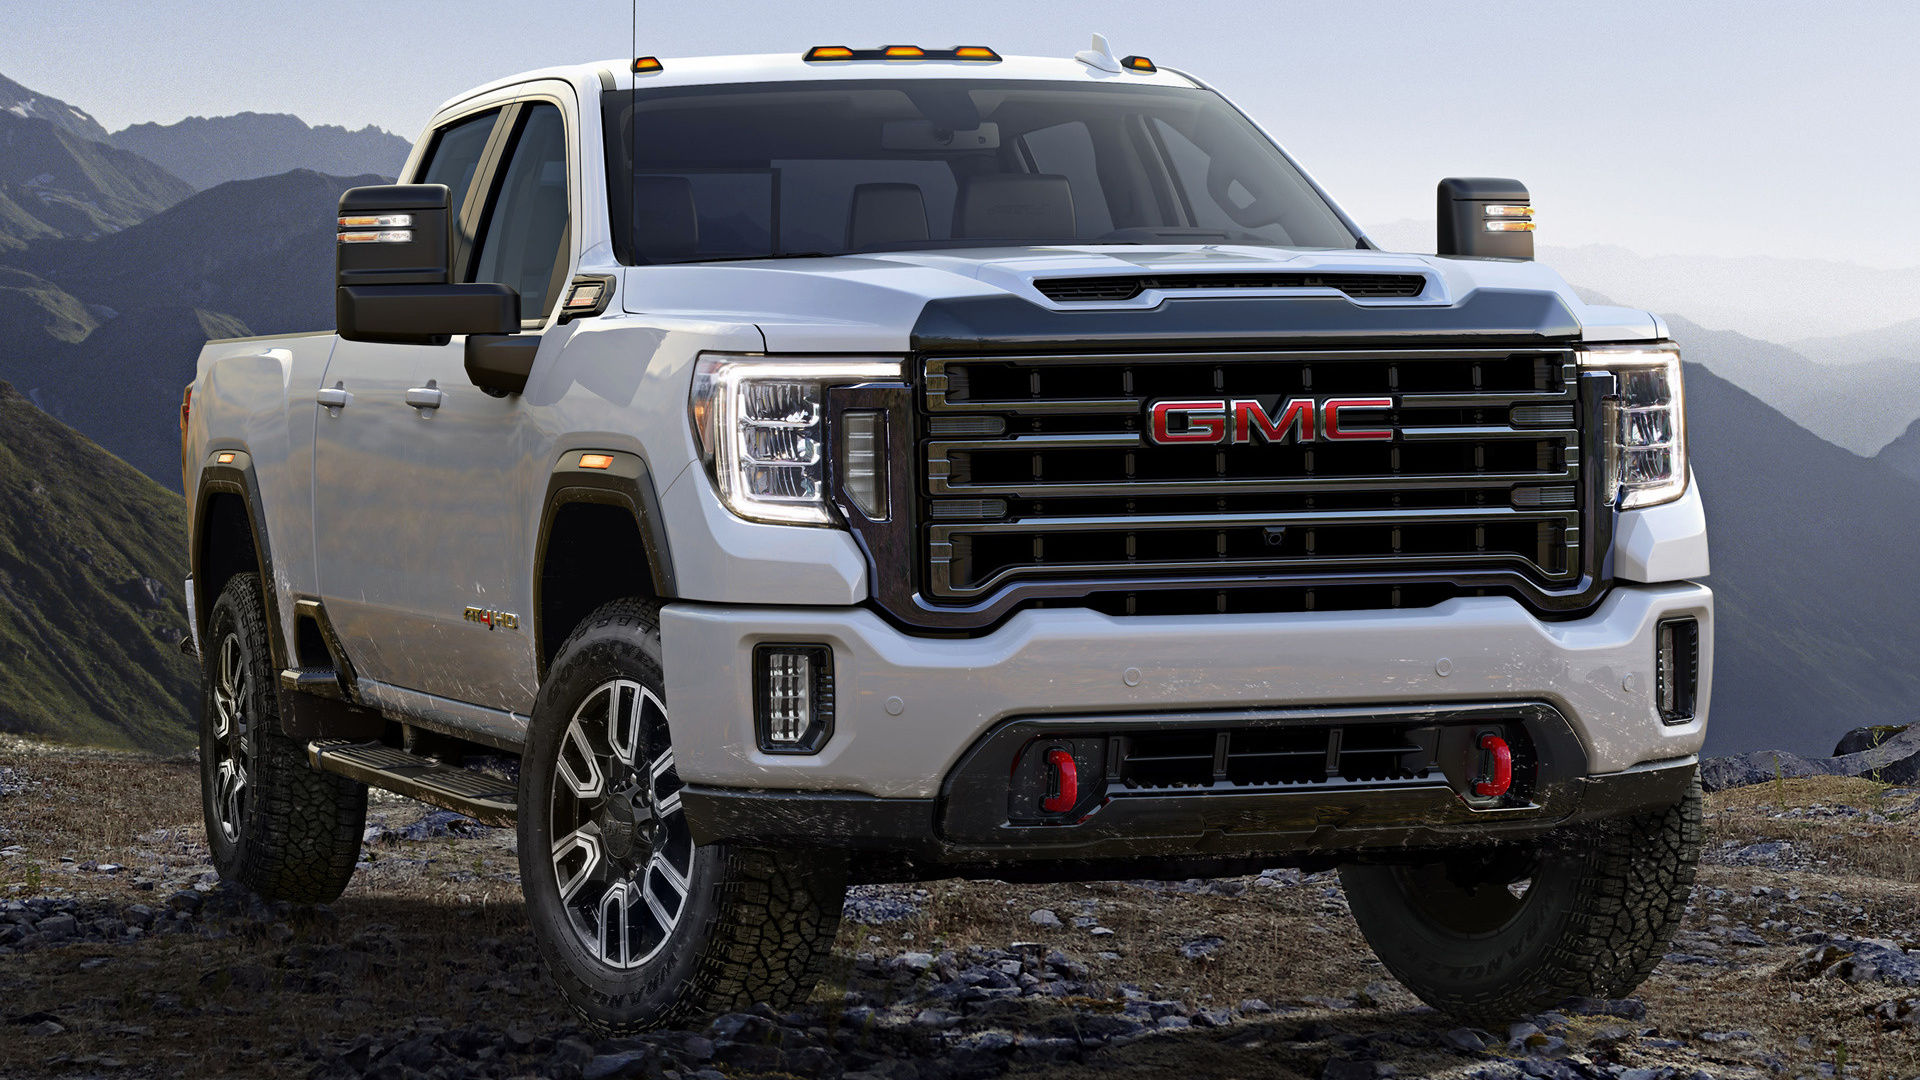 2020 GMC Sierra 2500 HD AT4 Crew Cab - Wallpapers and HD ...